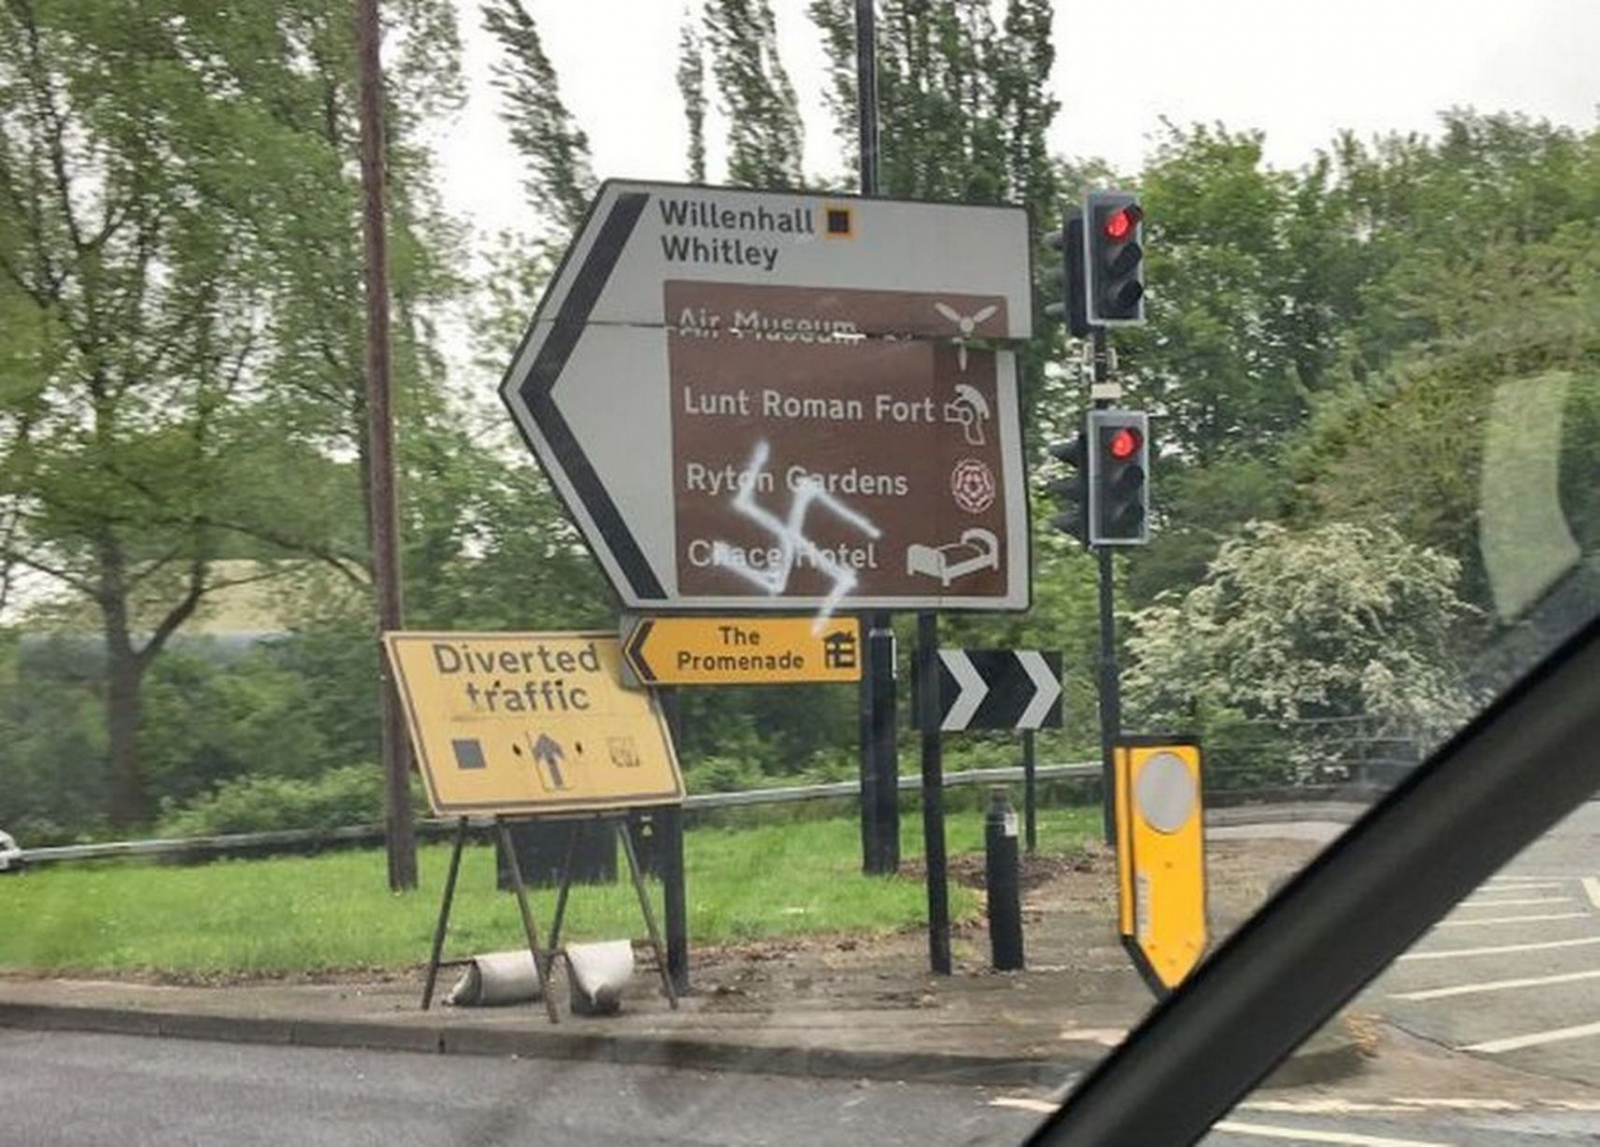 Swastika graffiti in Coventry